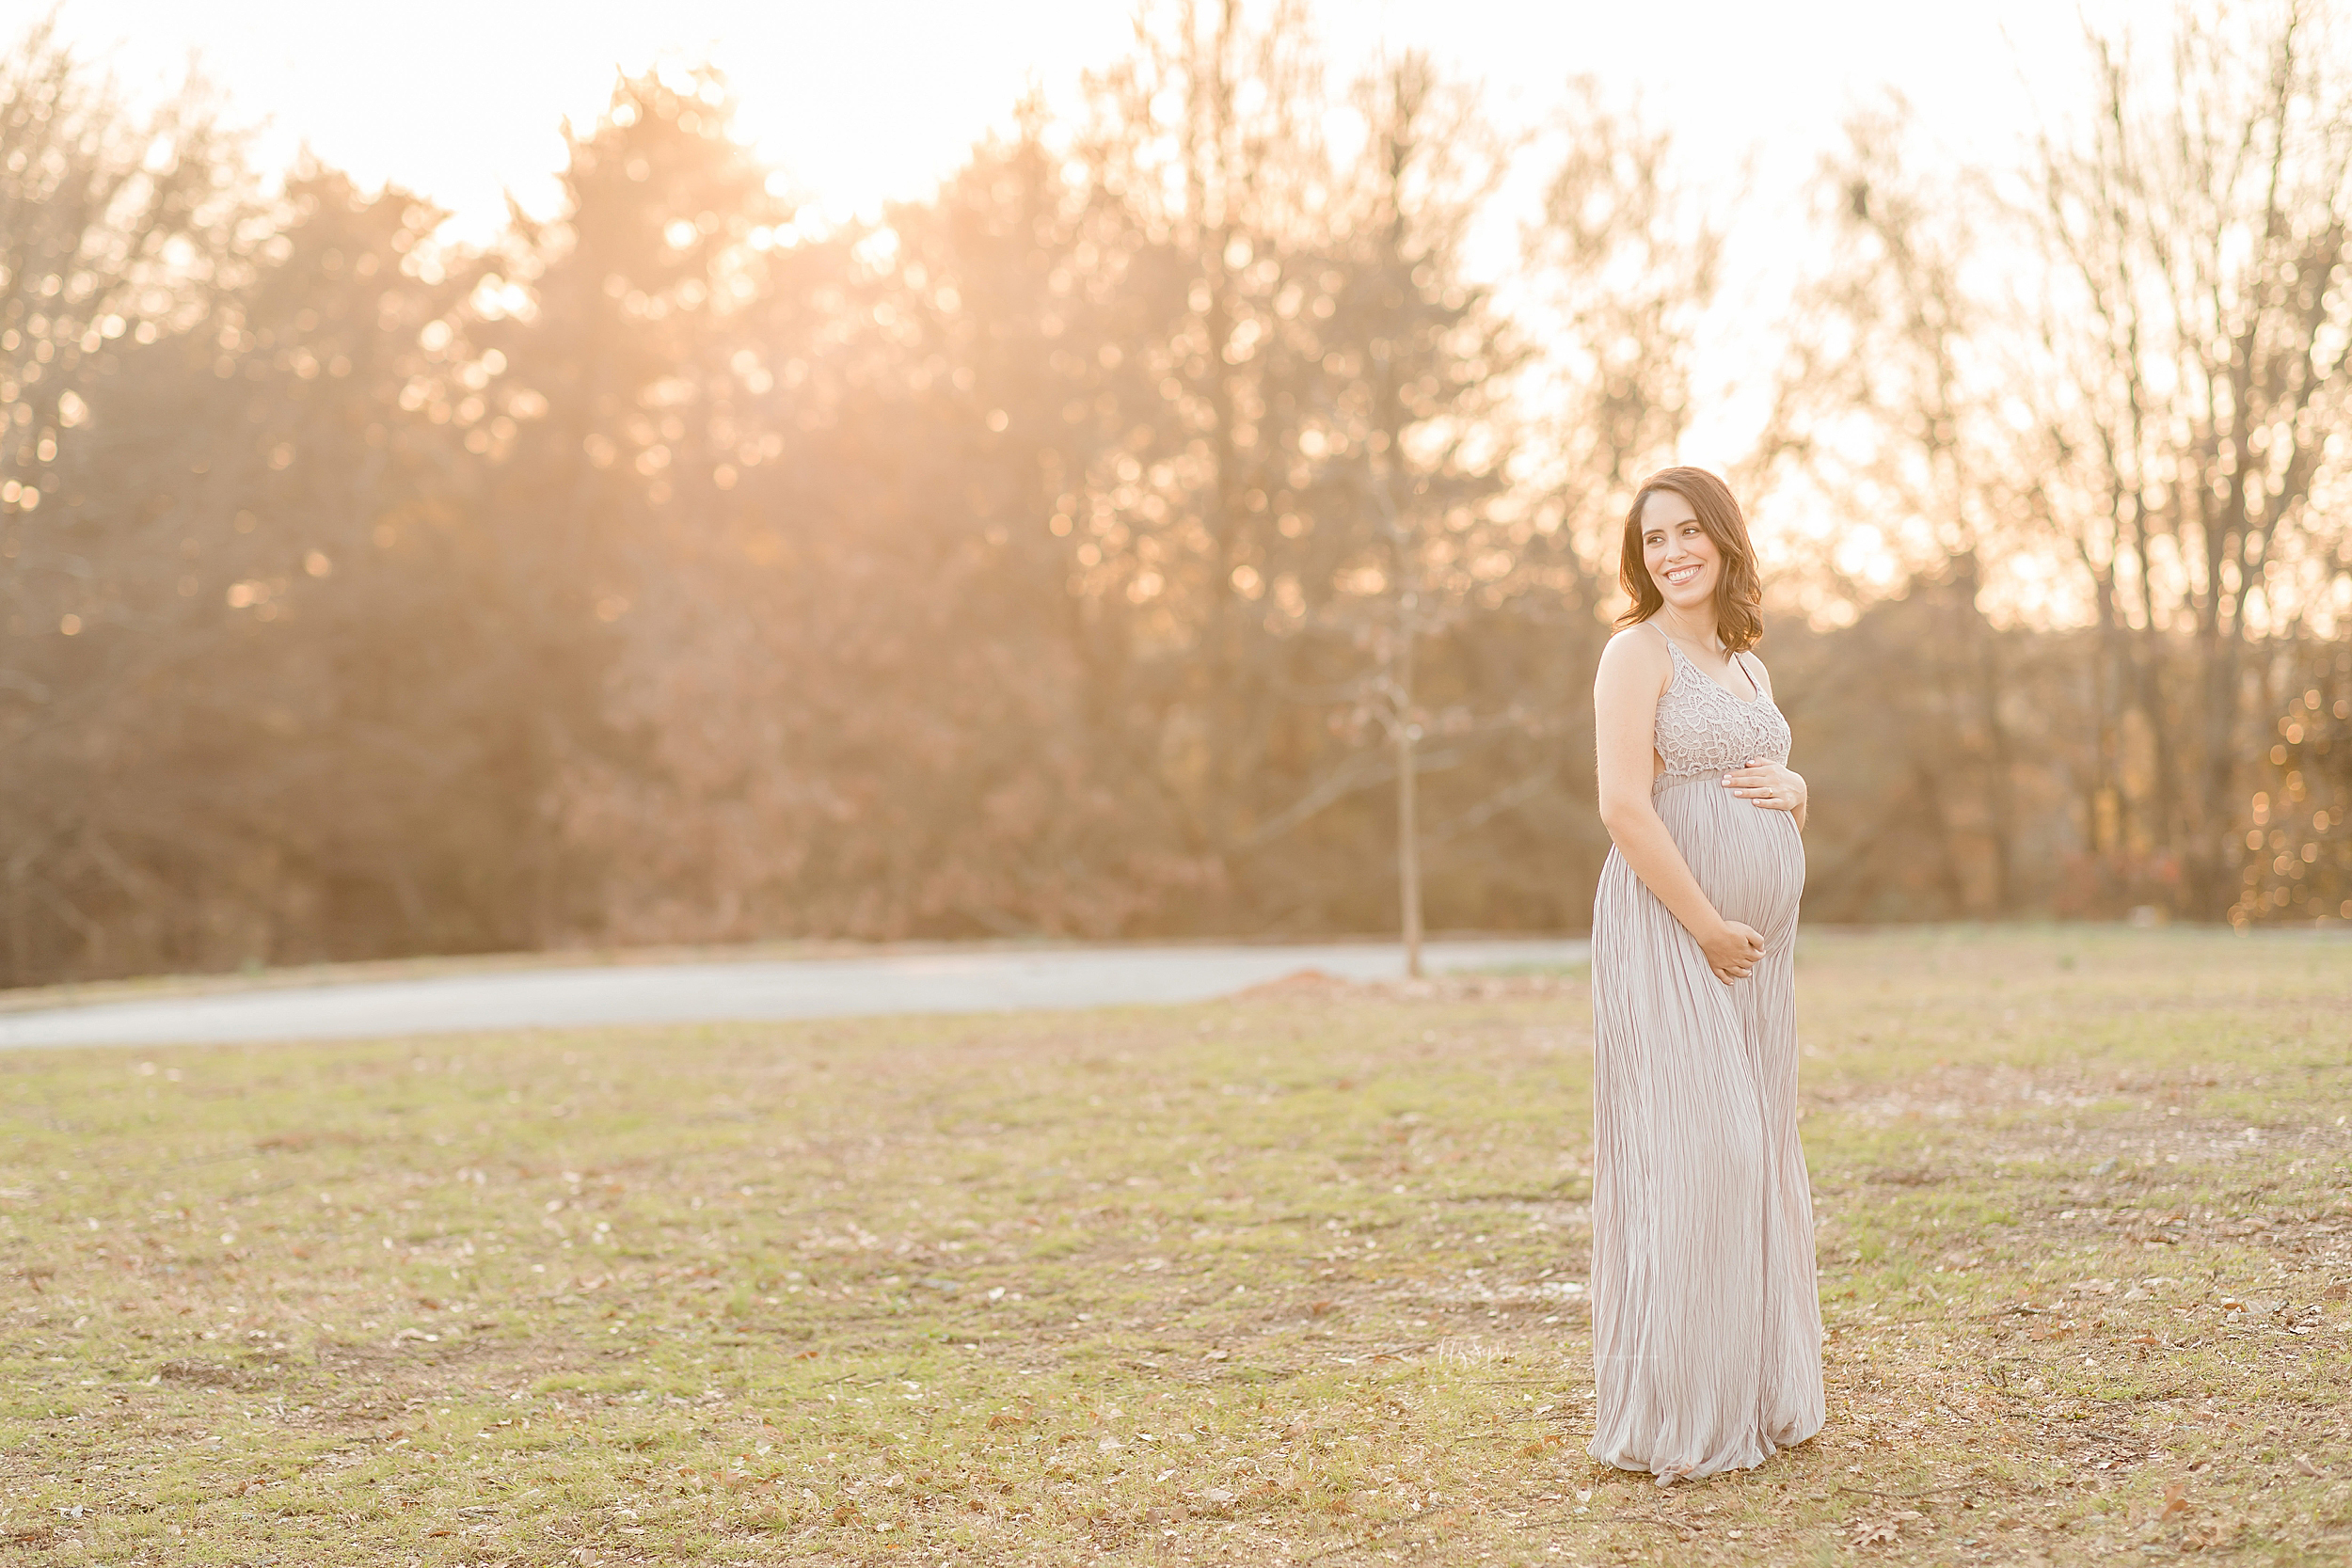 atlanta-sandy-springs-buckhead-virginia-highlands-smyrna-decatur-lily-sophia-photography-expecting-baby-girl-couples-maternity-session-sunset-park_0908.jpg